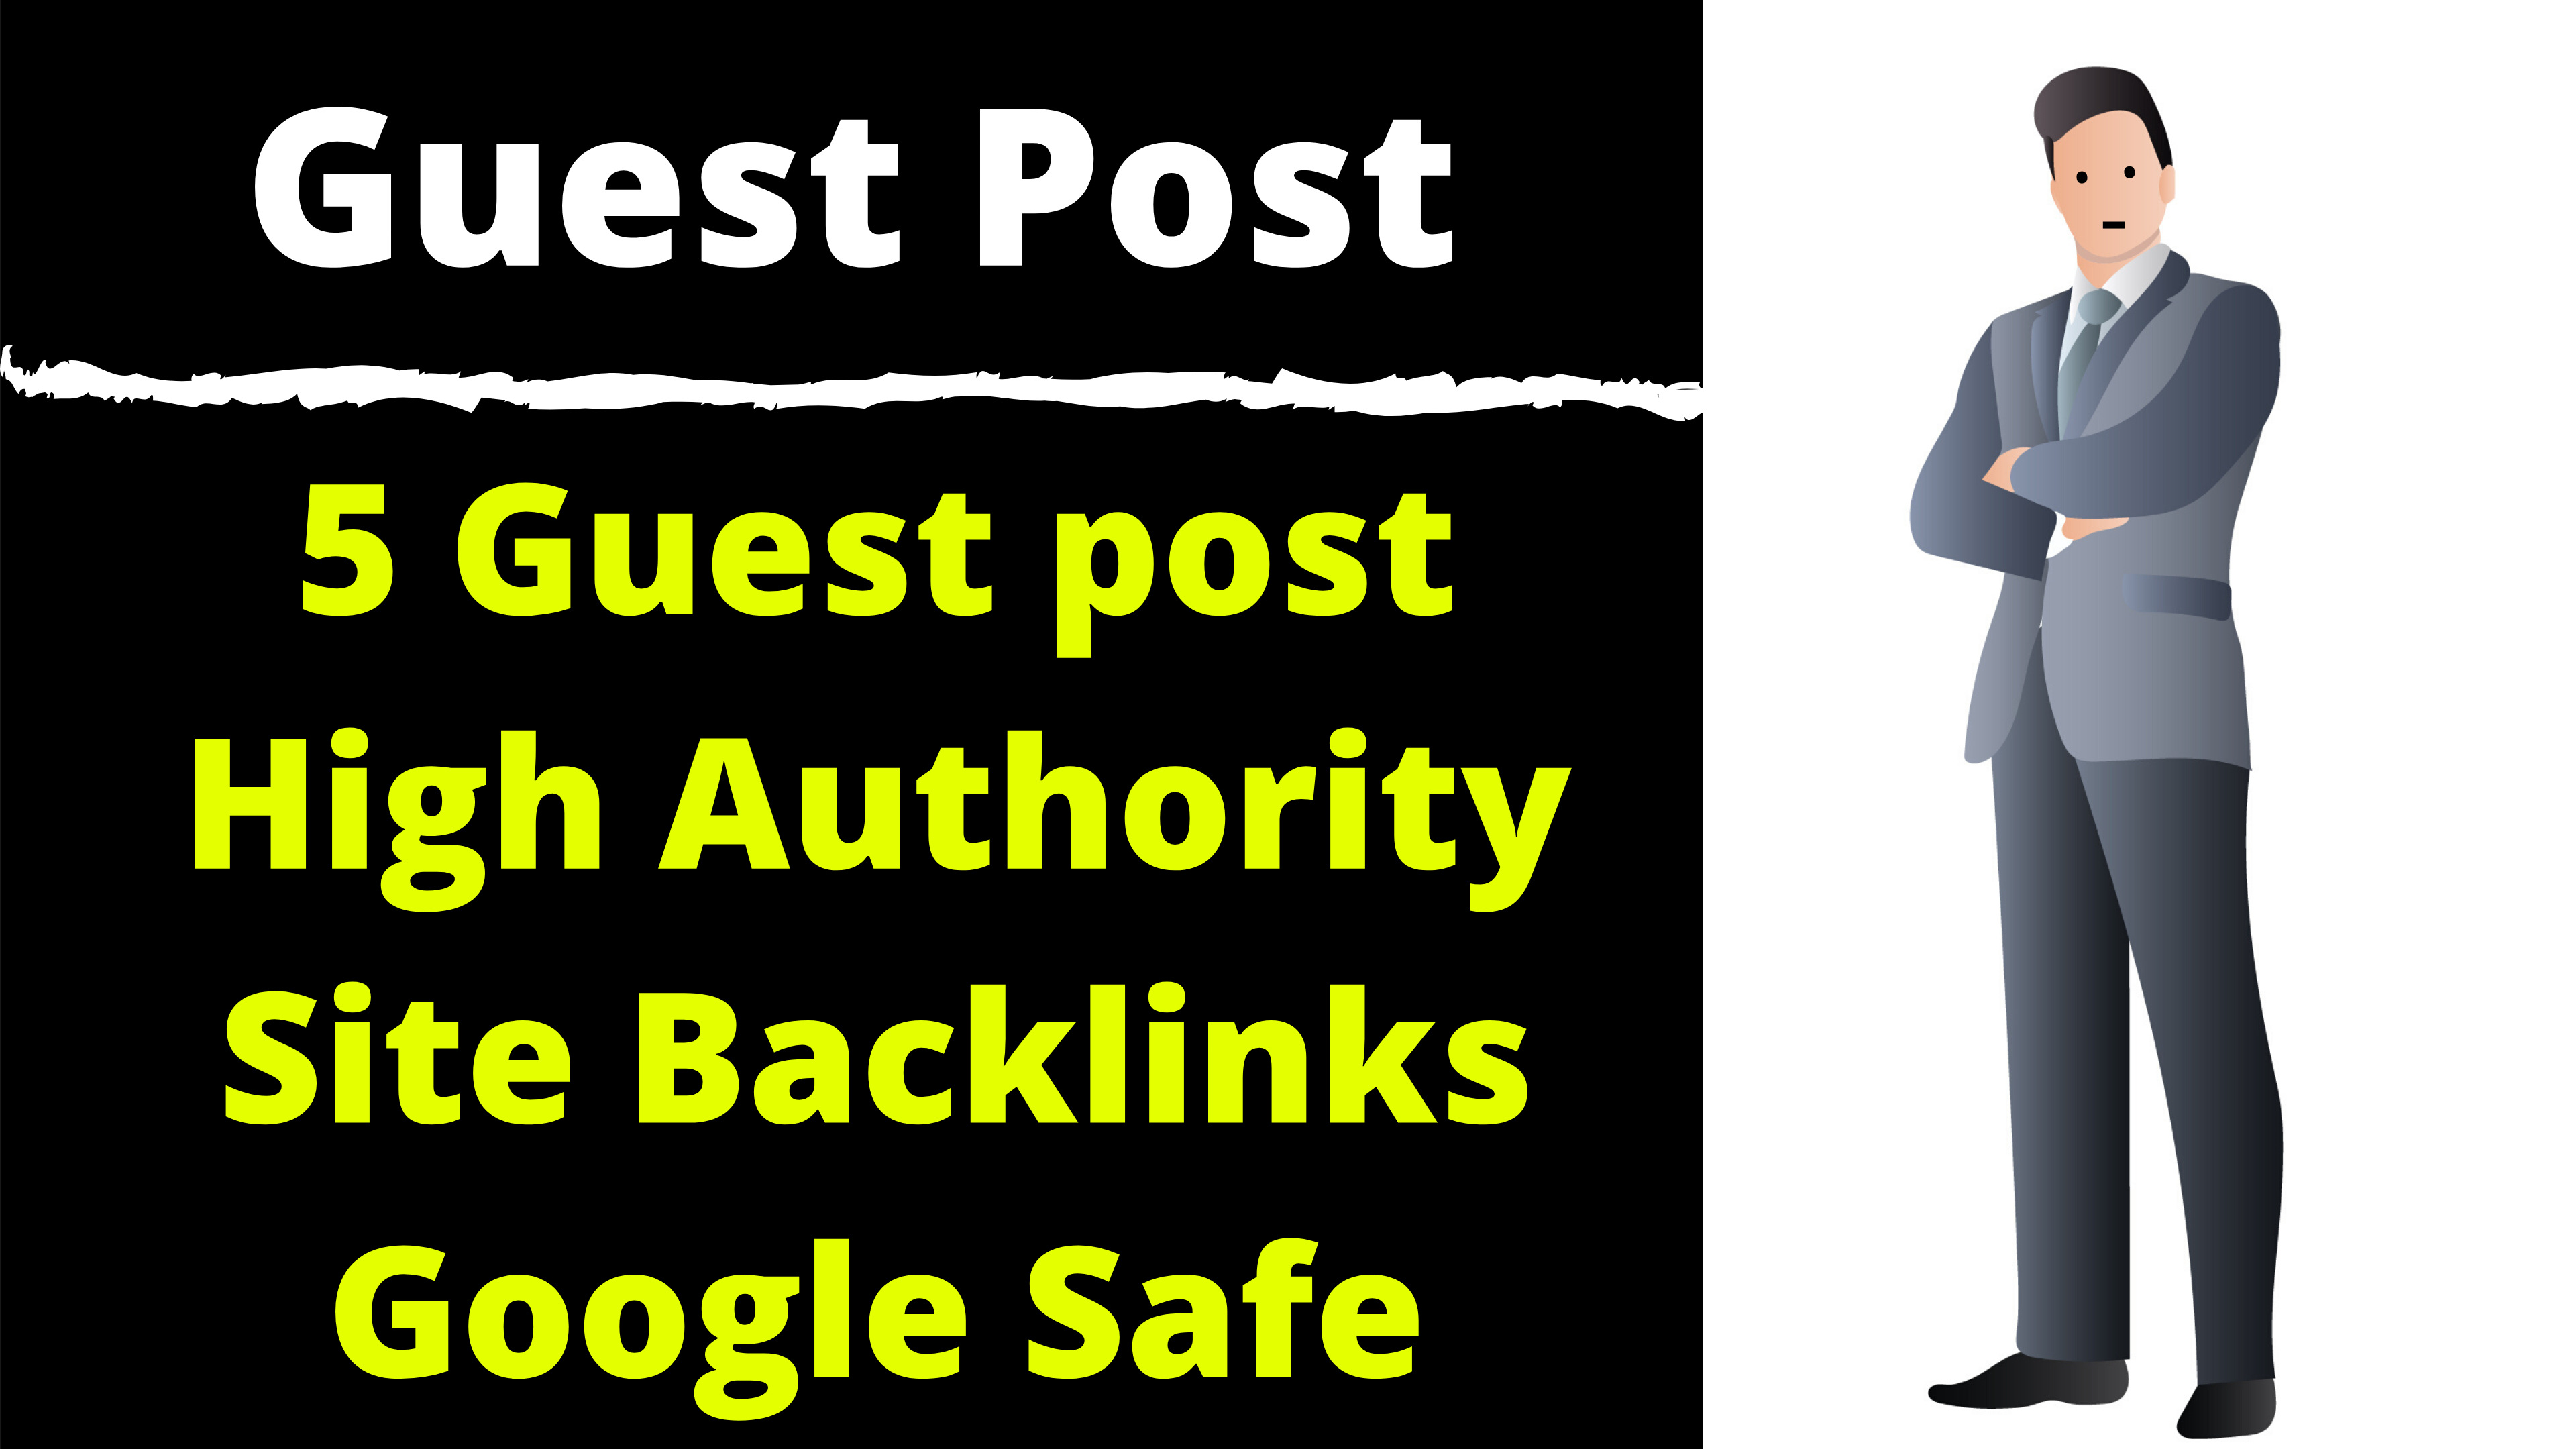 5 Guest Posting From High Domain Authority Sites 70 - 100 DR